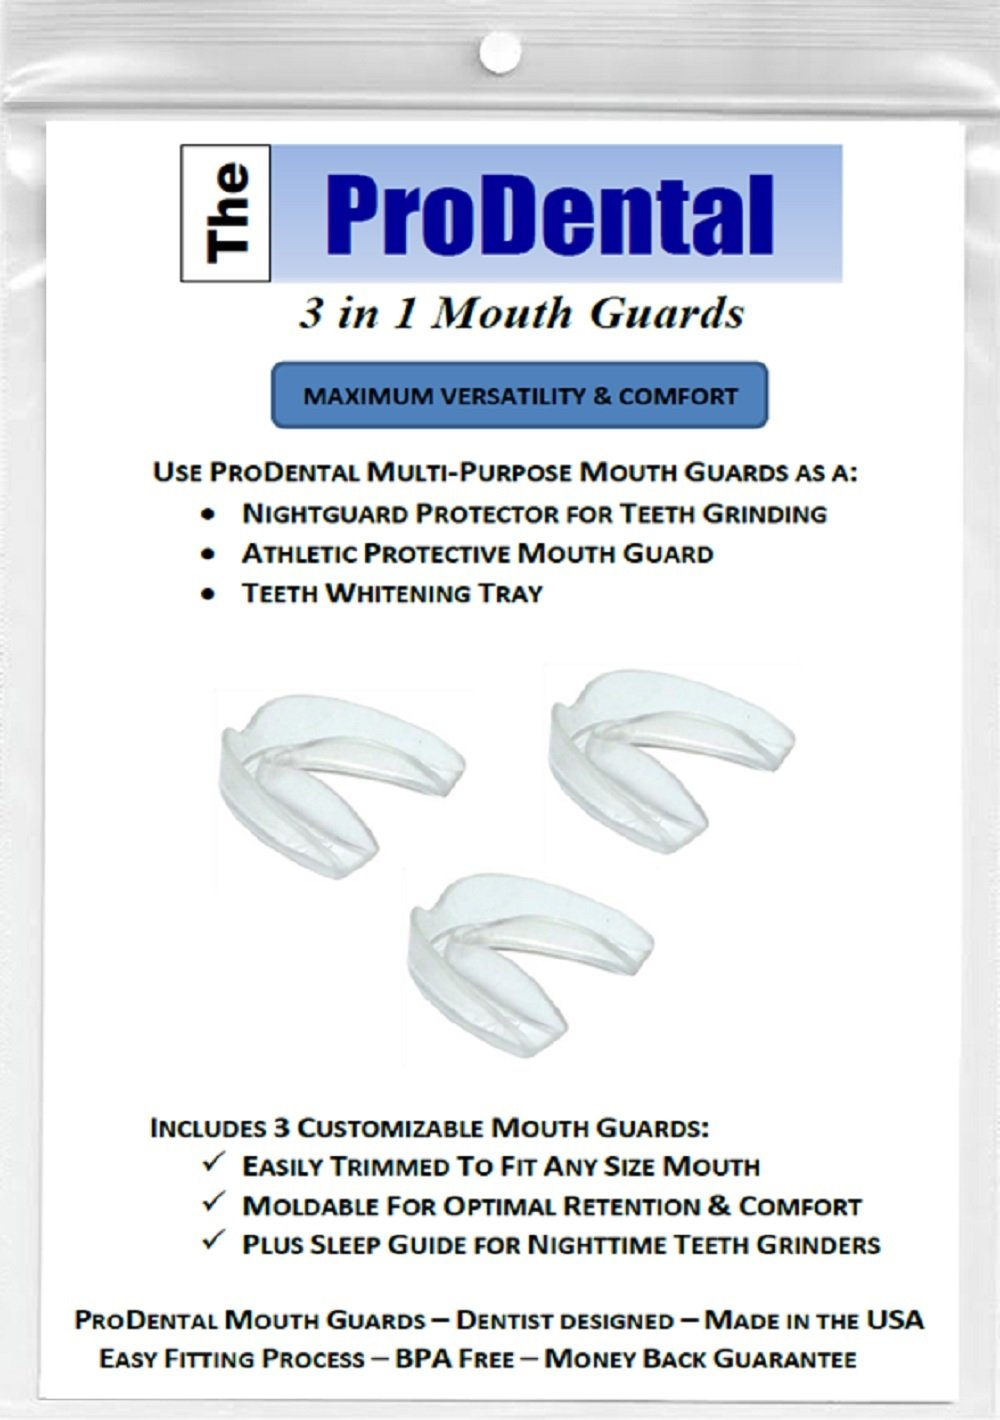 Mouth Guard from ProDental - No BPA - Teeth Grinding Night Guard, Athletic Mouth Guard, Teeth Whitening Tray - Includes 3 Customizable for Comfort Dental Guards - Hygienic, FDA Approved Soft Material - Made in USA